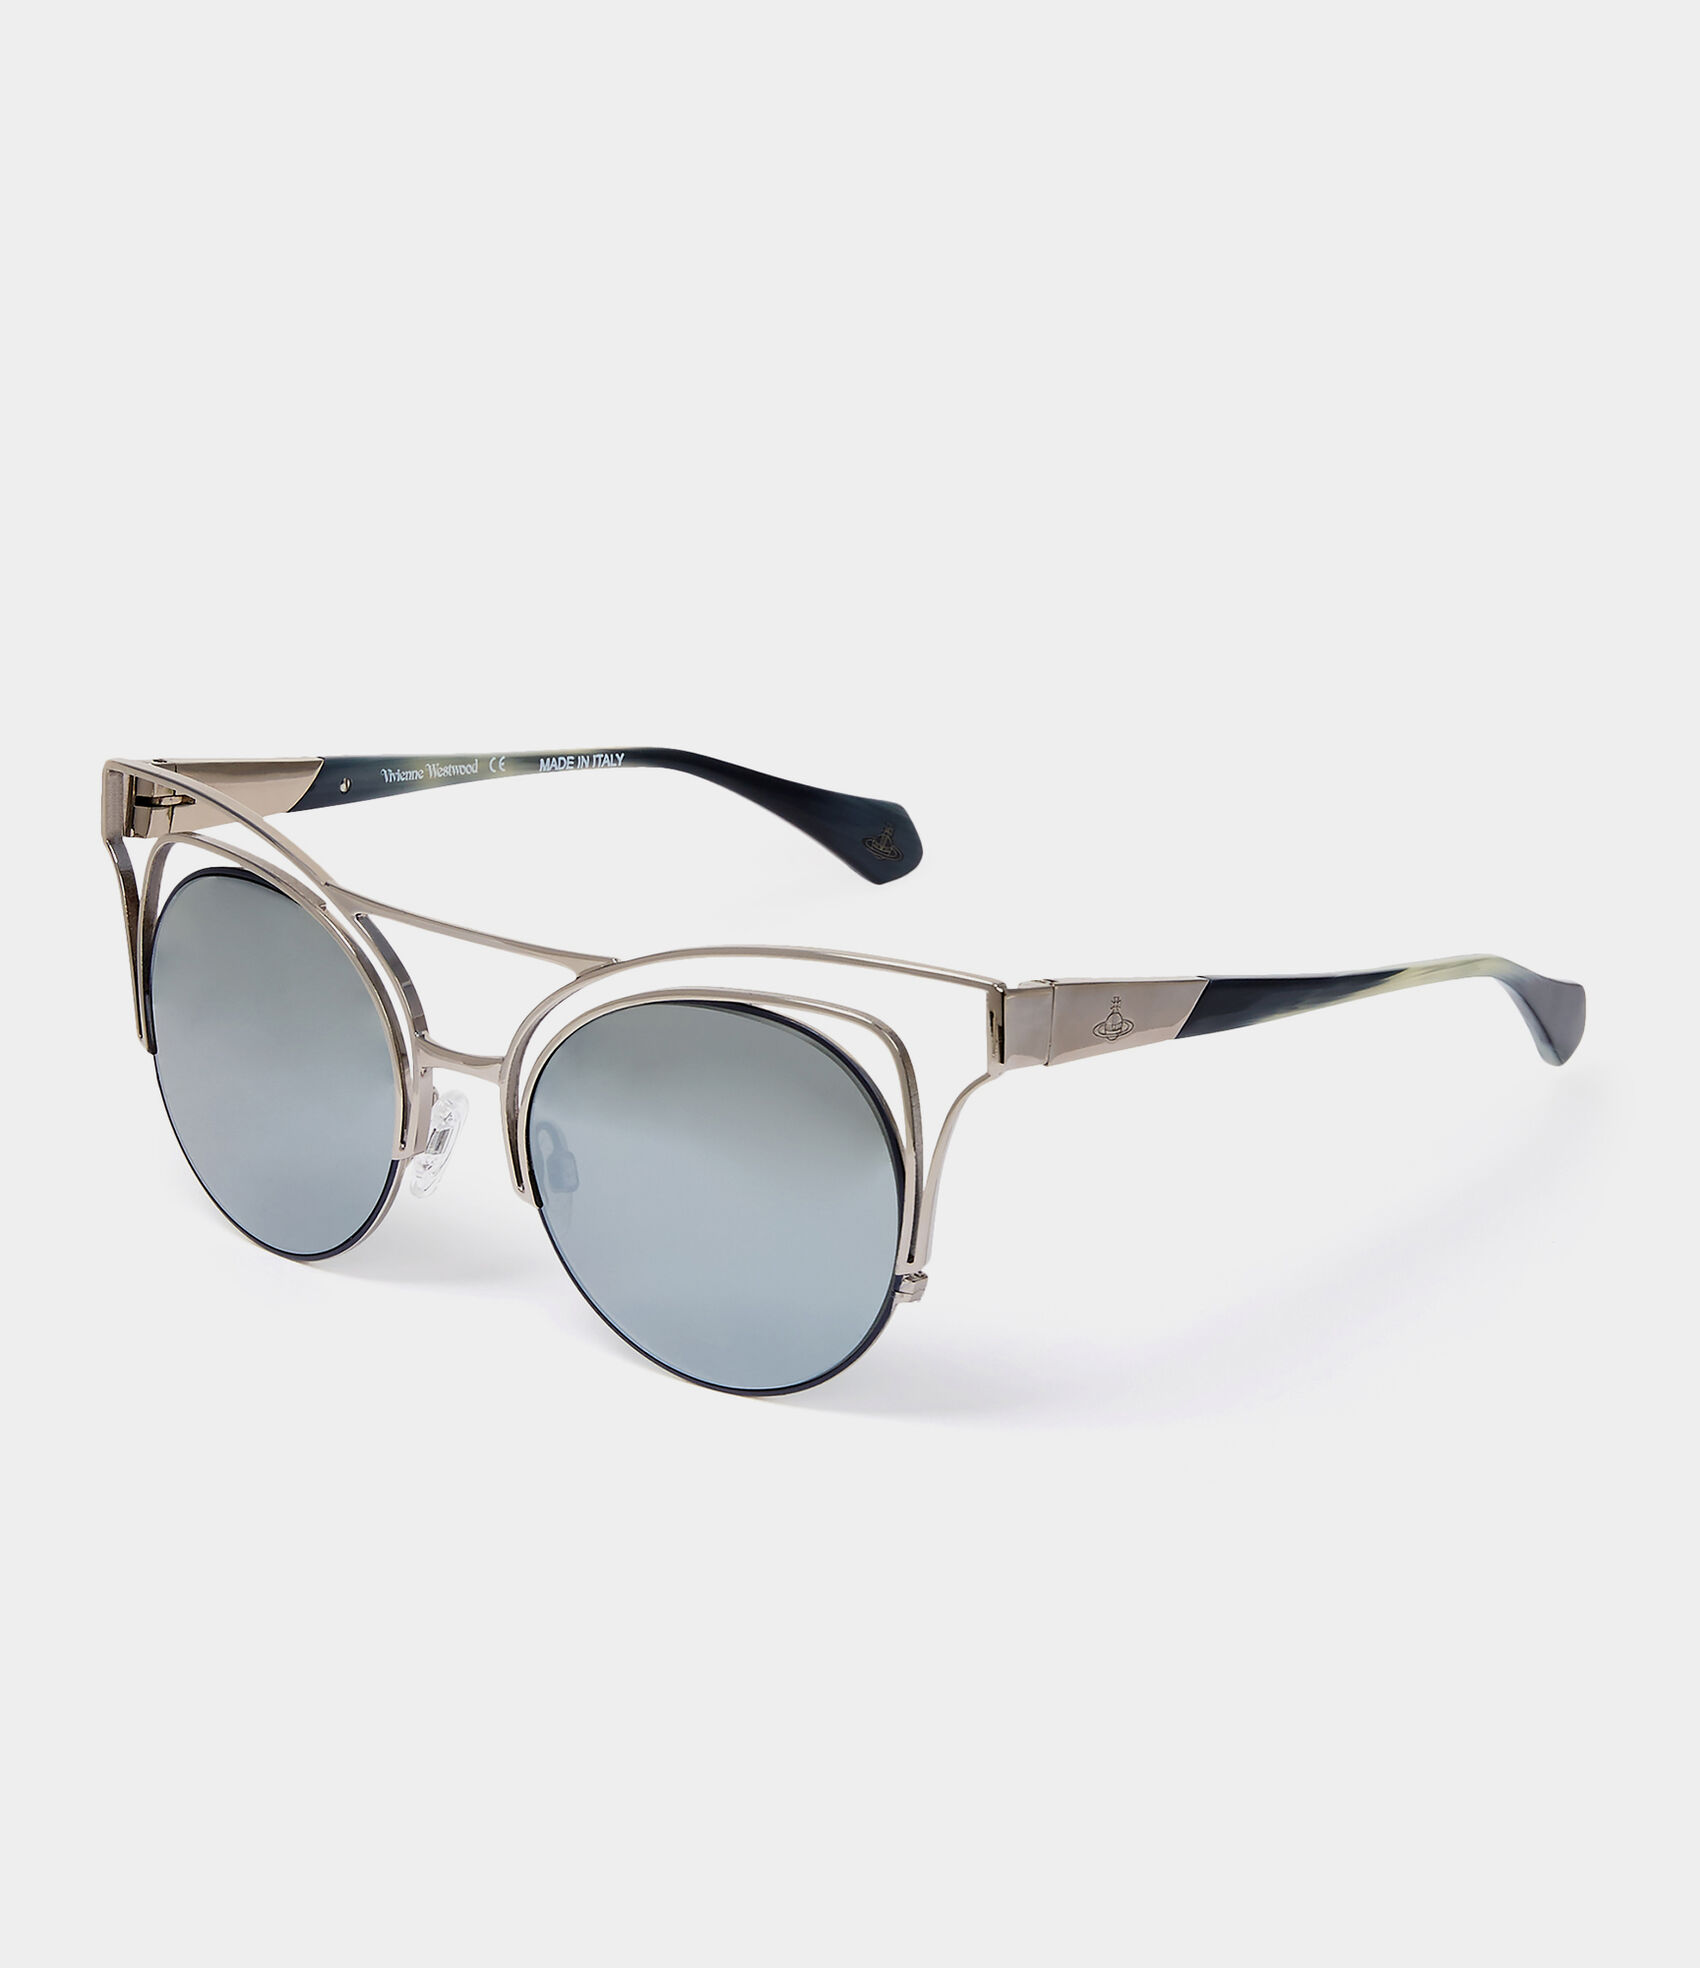 443118ec31ad Cut Out Cat-Eye Sunglasses Gunmetal Gold